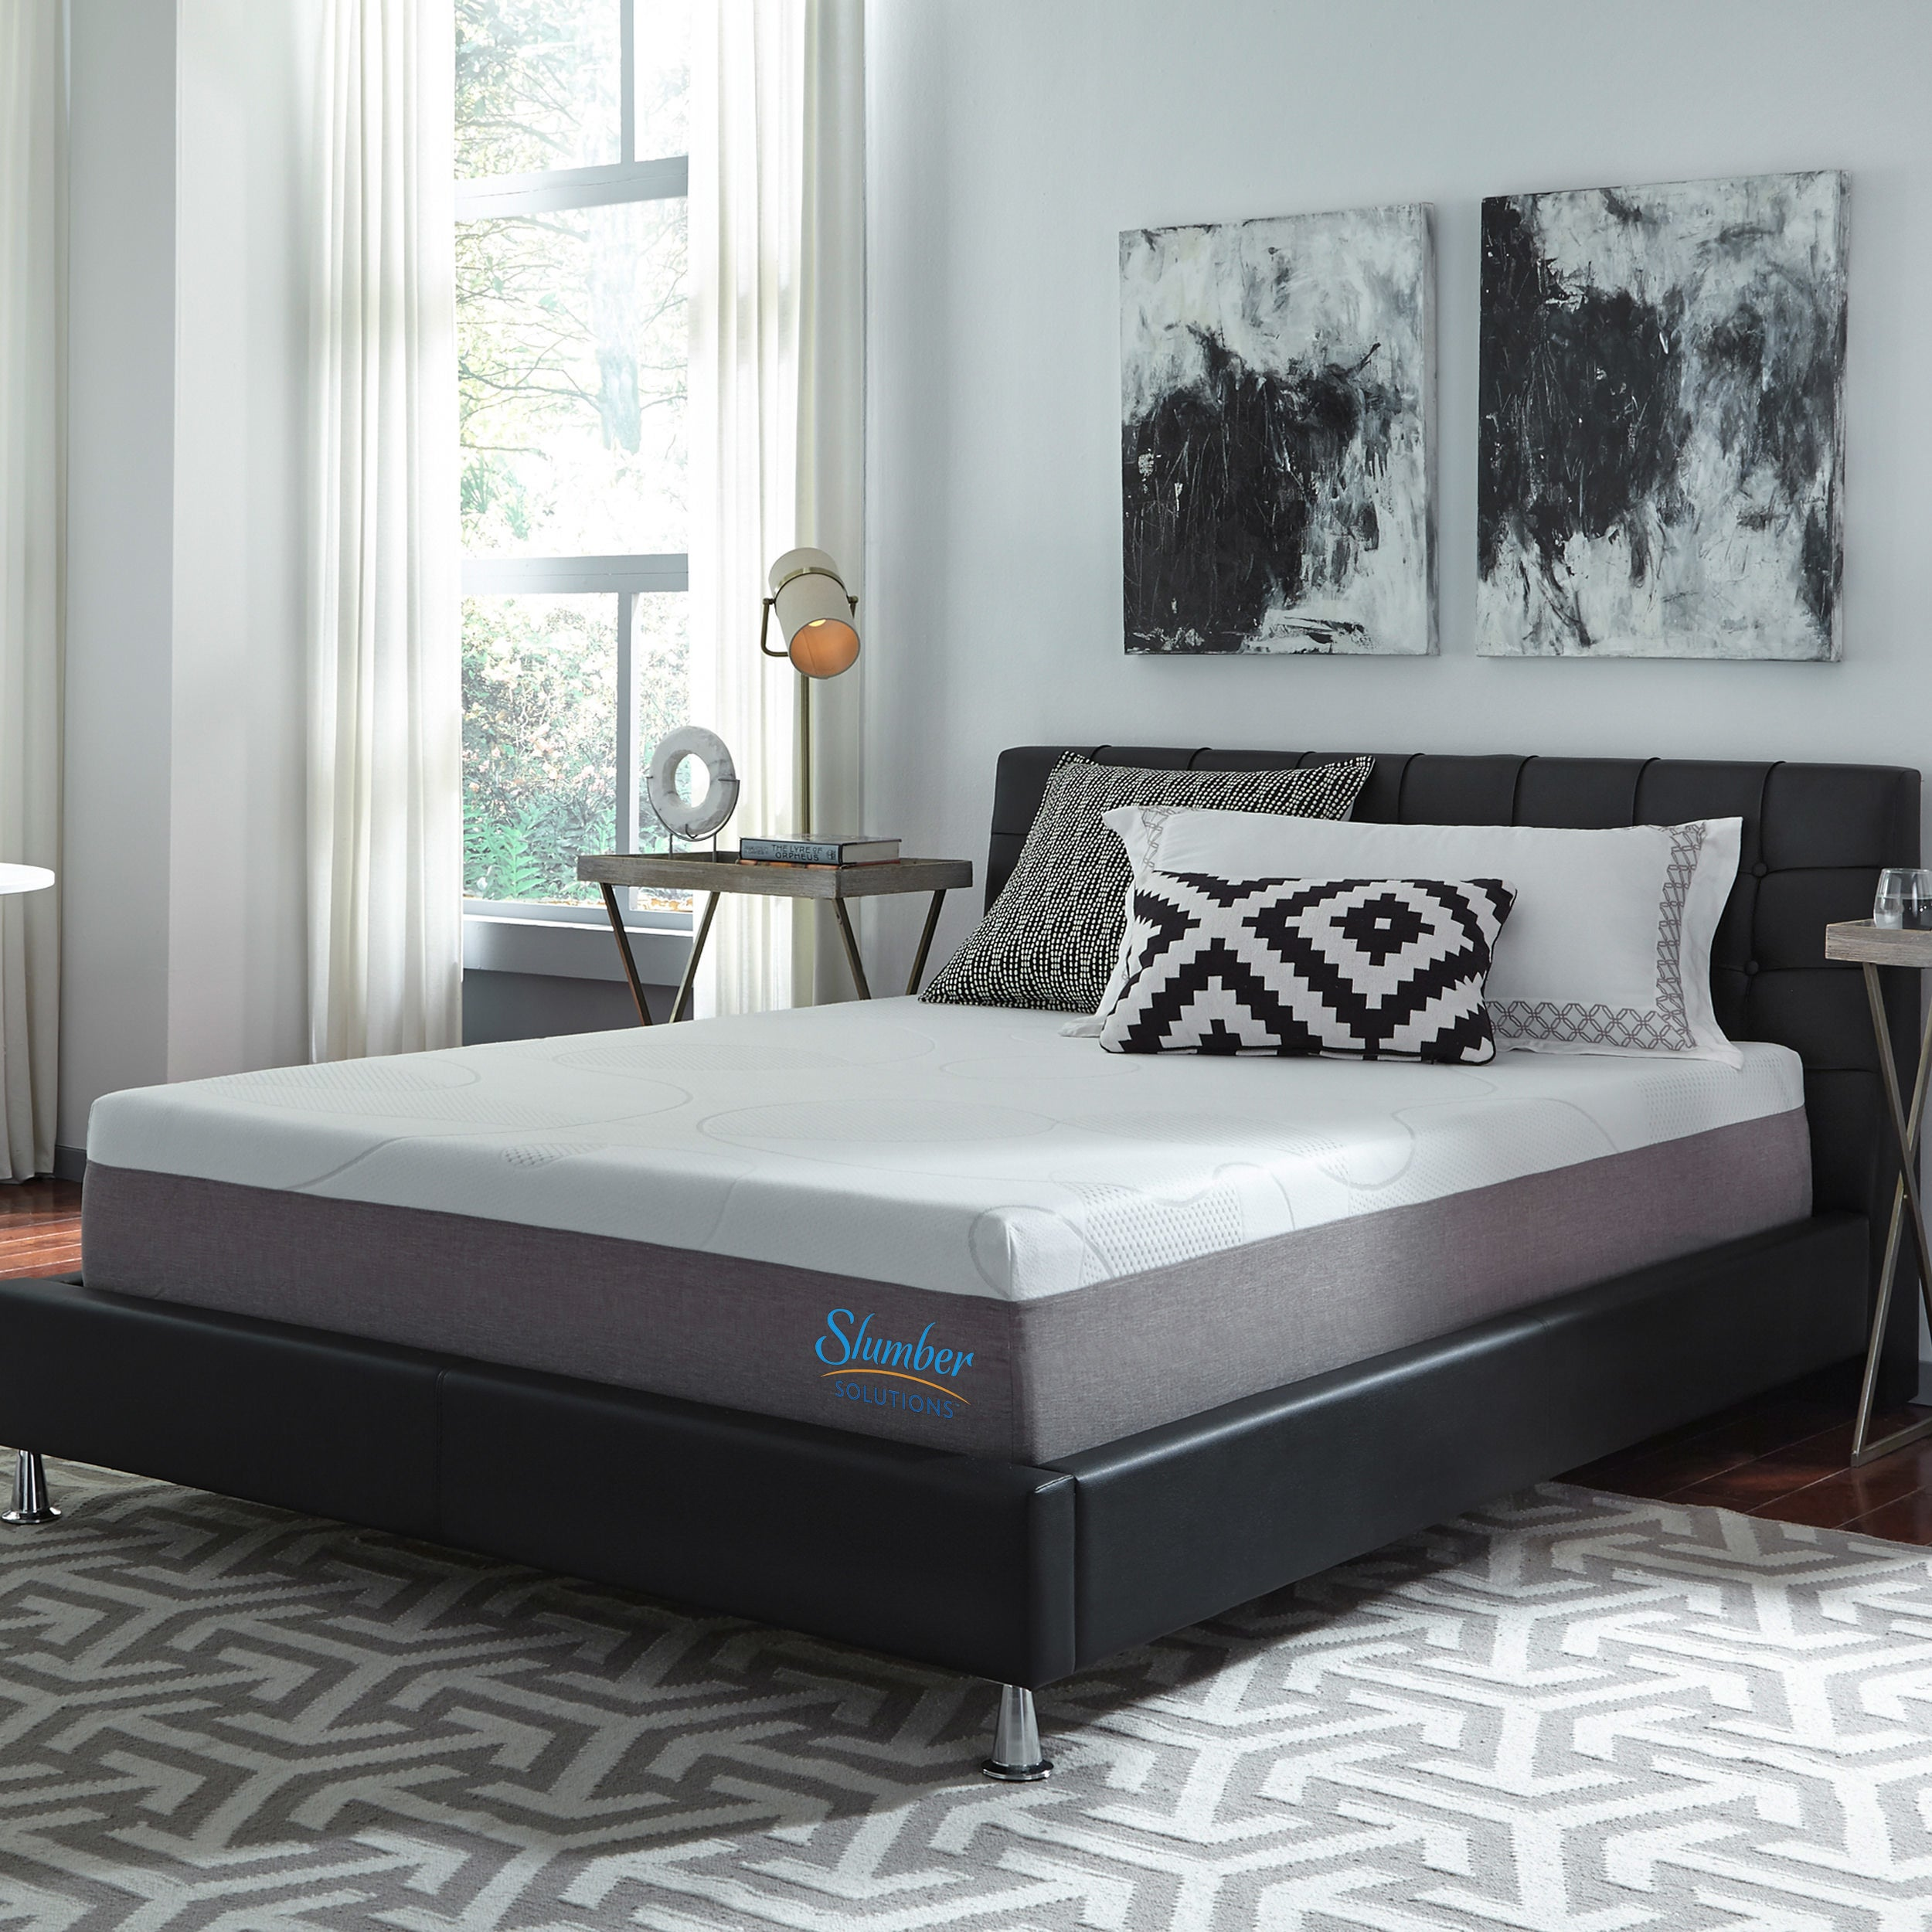 sleep retailer prices bed reviews mattress picture com goodbed store helix number